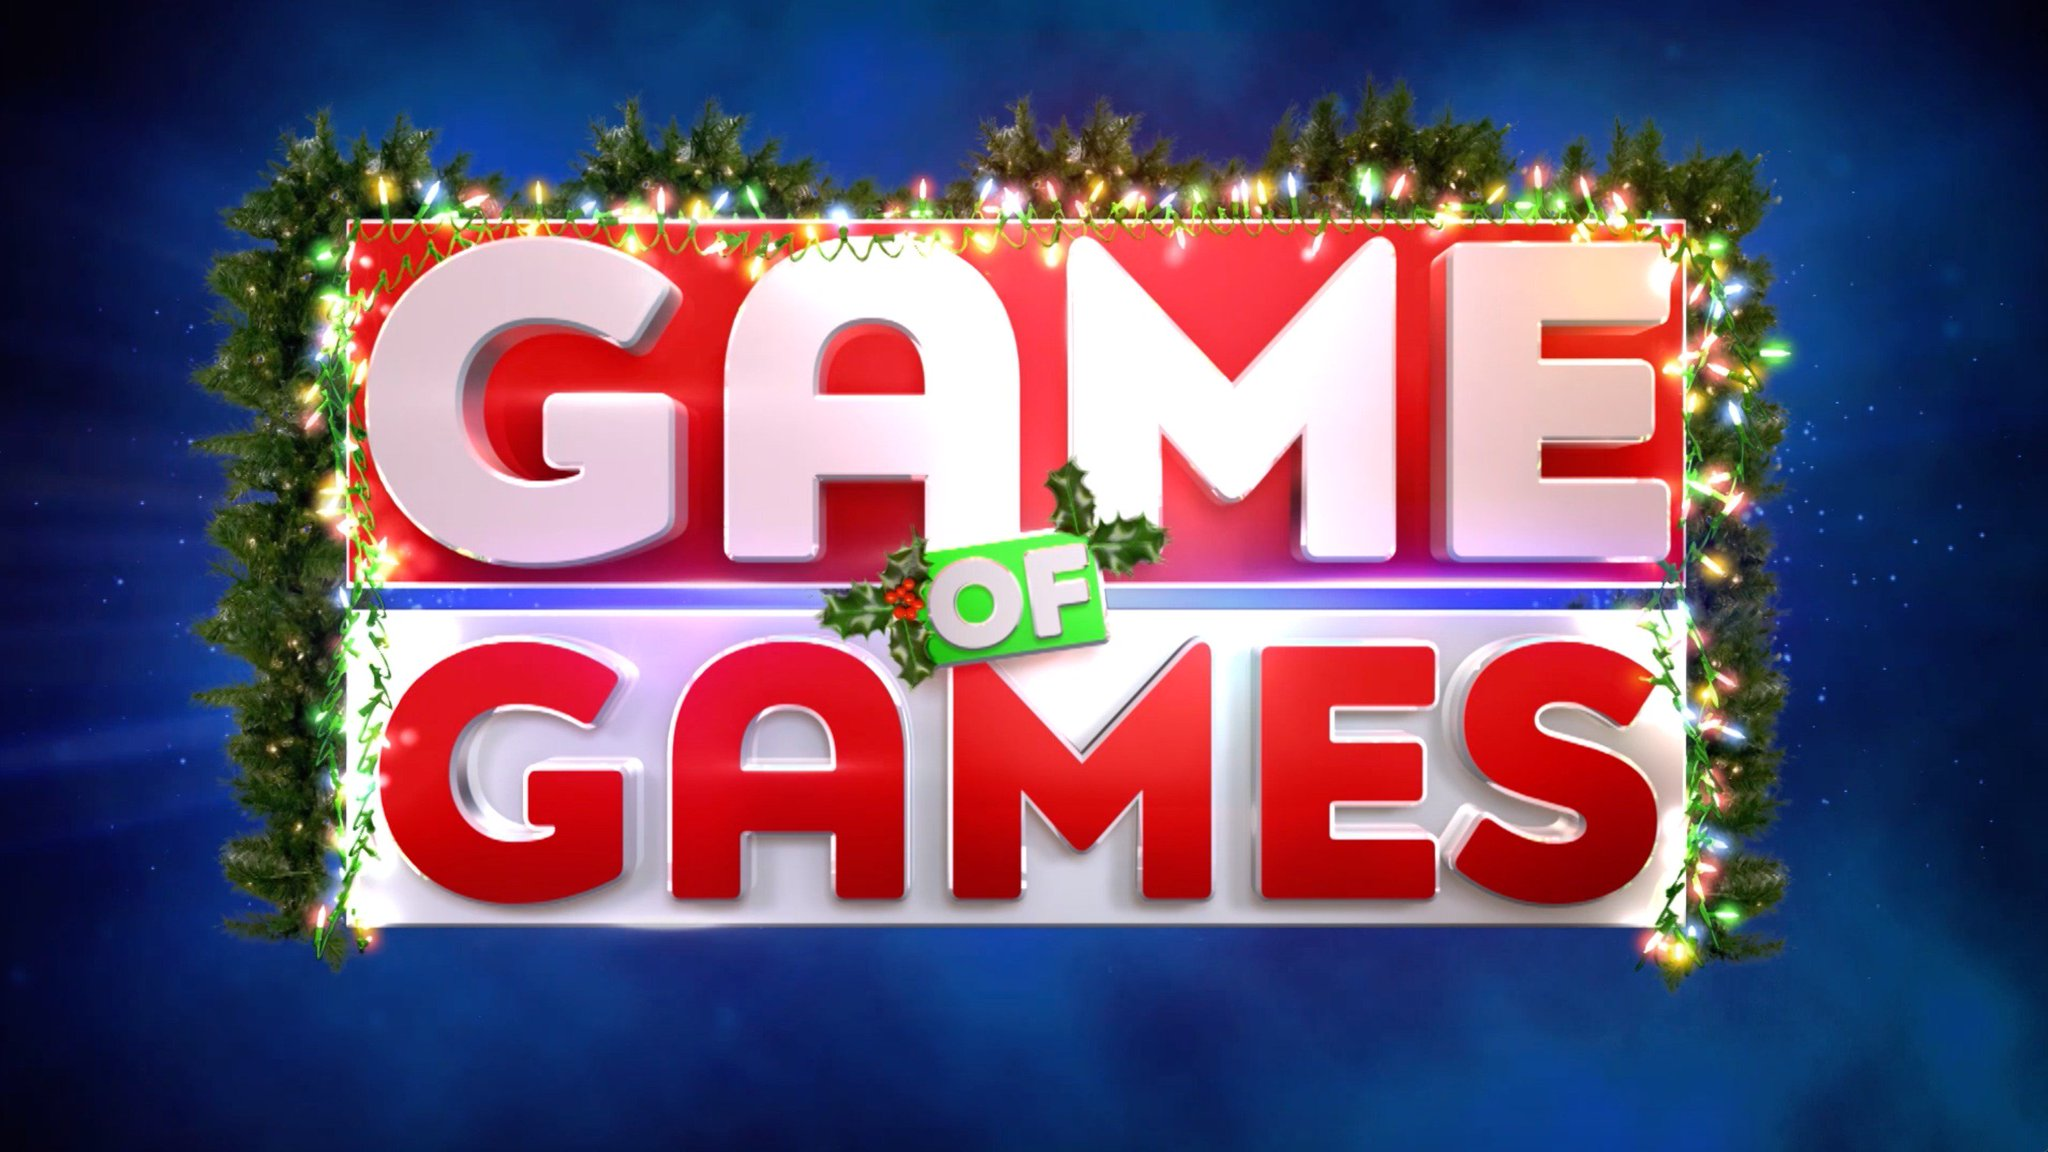 I hope you're ready for the #GameofGames Holiday Spectacular tonight 8/7c! https://t.co/Z6L8UL7D5h